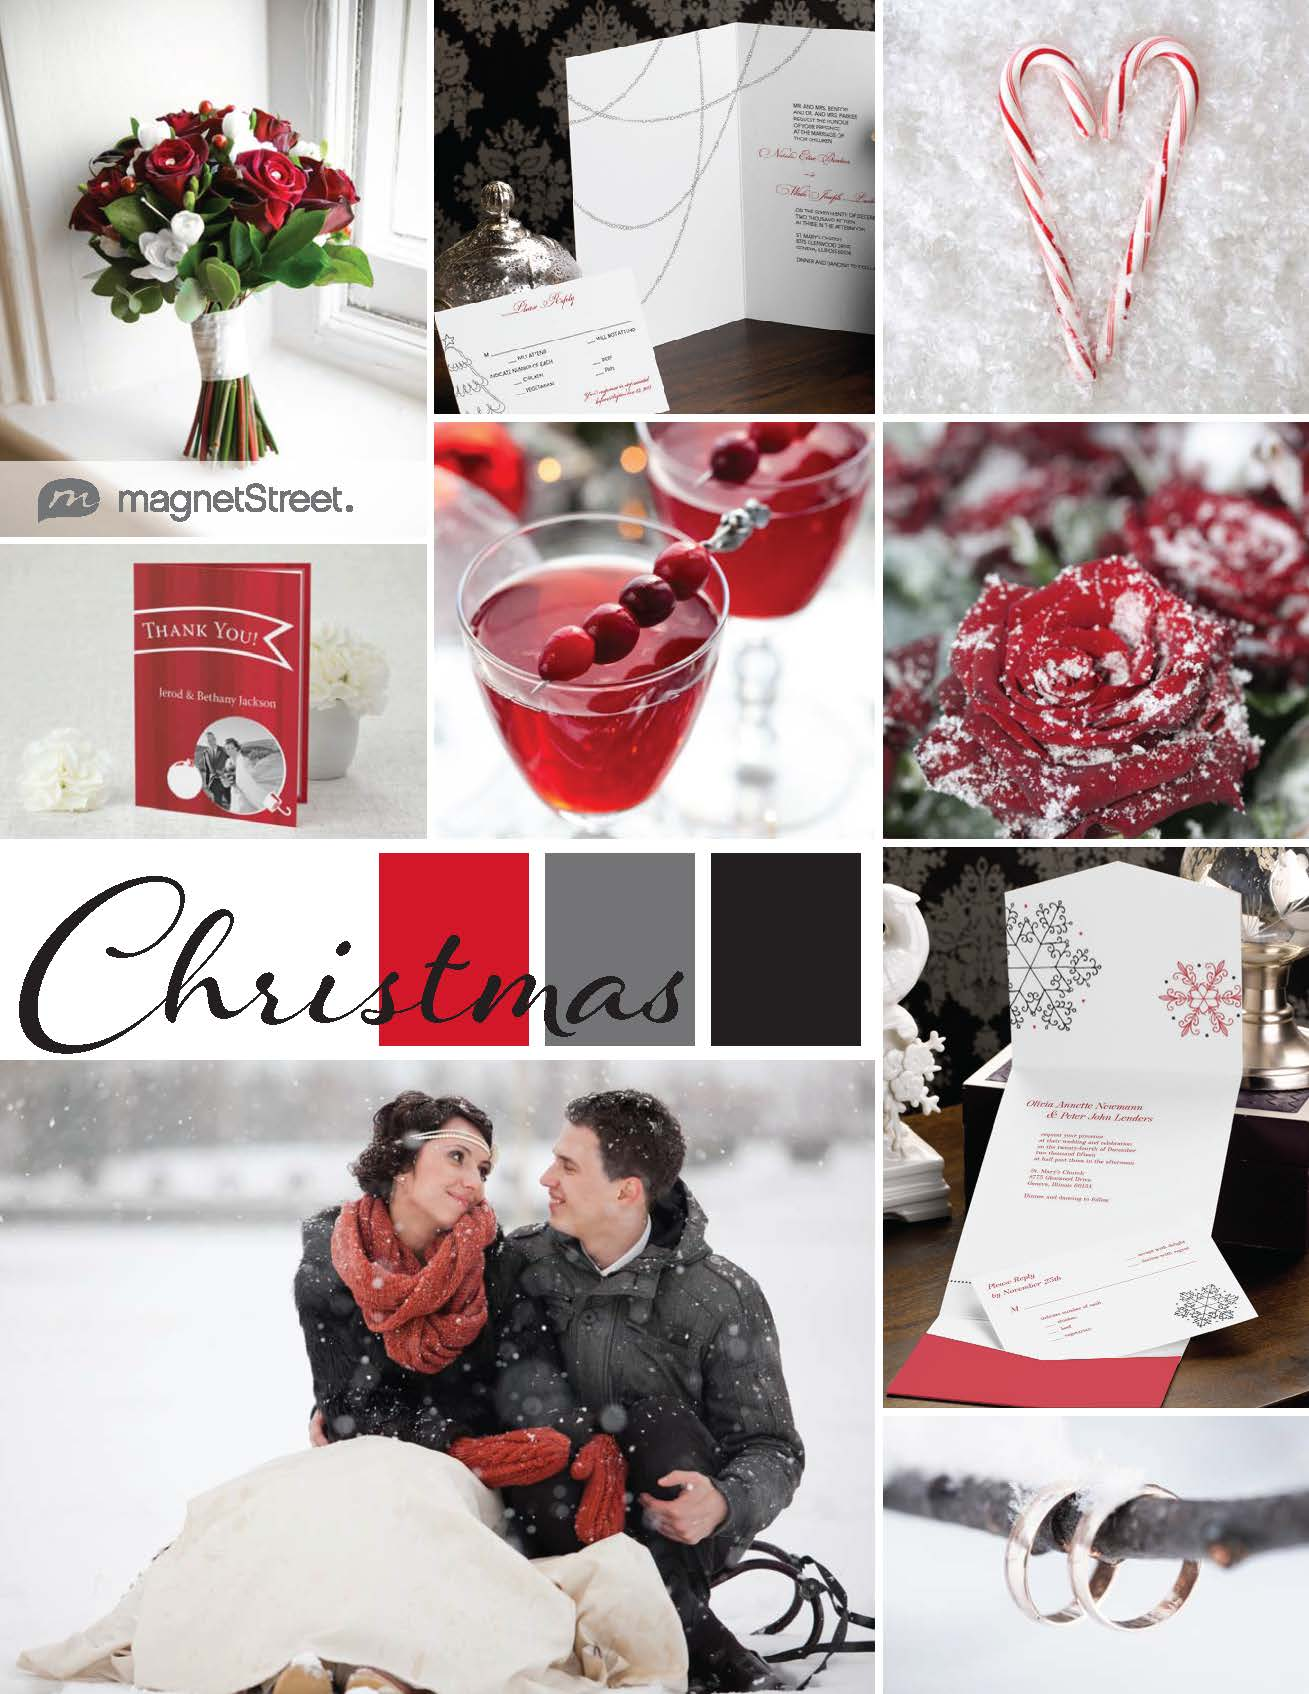 Holiday wedding inspiration in red, charcoal and black!